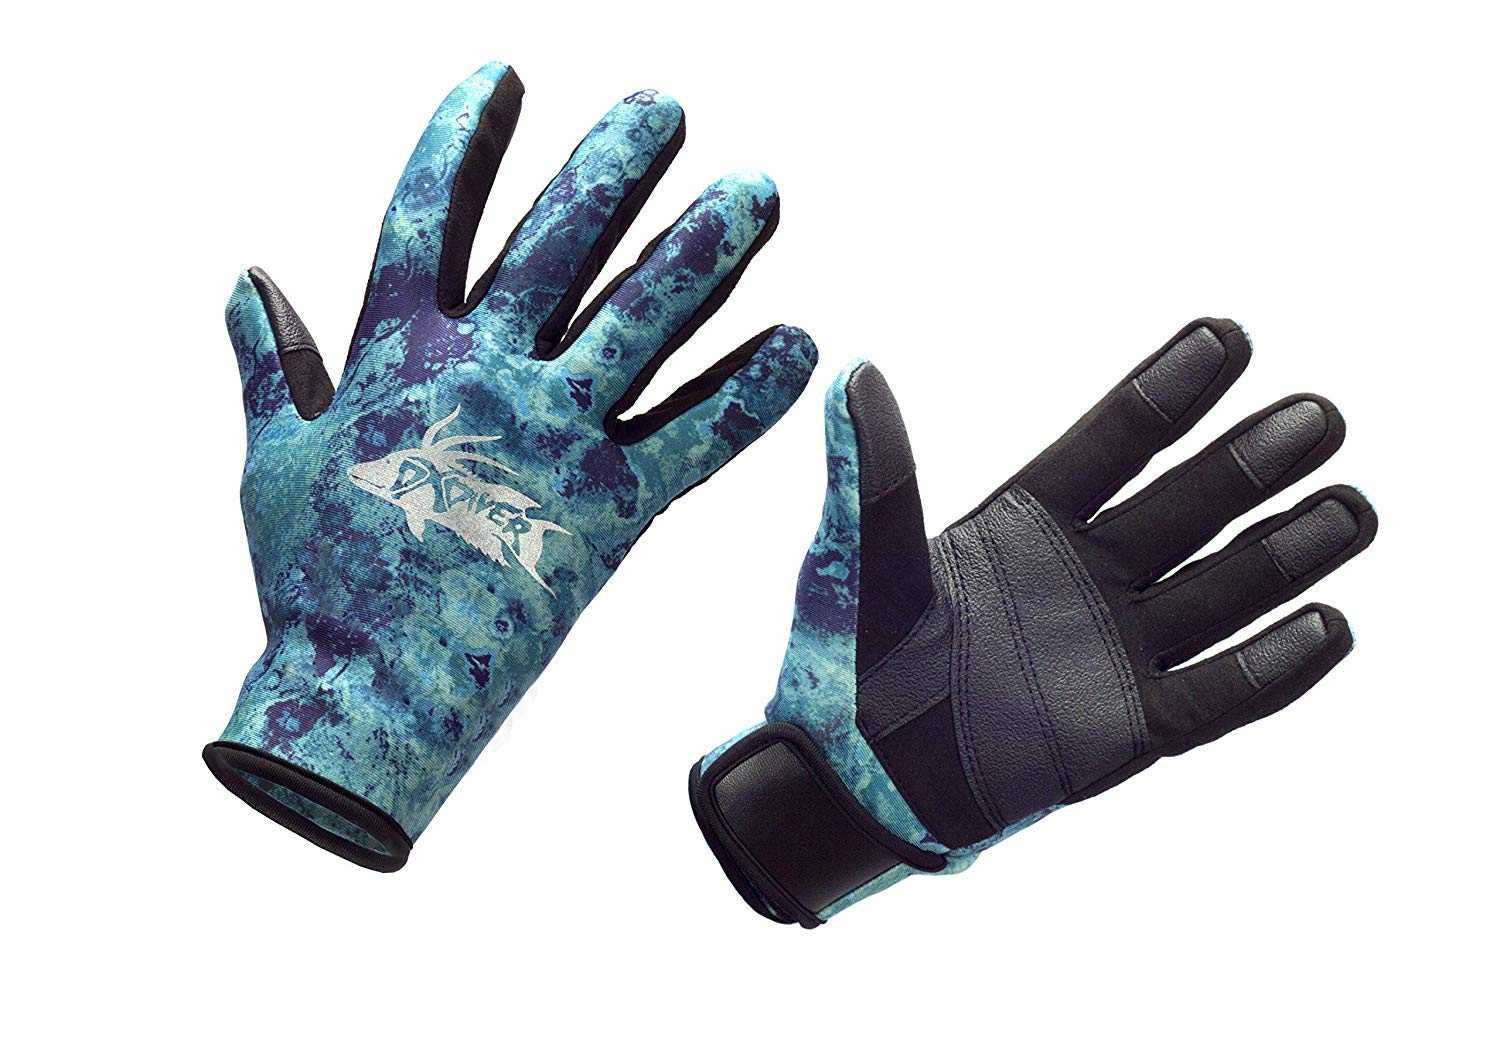 DXDiver Automatic Pole Spear, Camo Amara 2mm Neoprene Gloves & Sopras Sub Knife Scuba Diving Freediving Spearfishing (Black Handle Stainless Steel Blade, Medium Gloves) by DXDiver (Image #5)